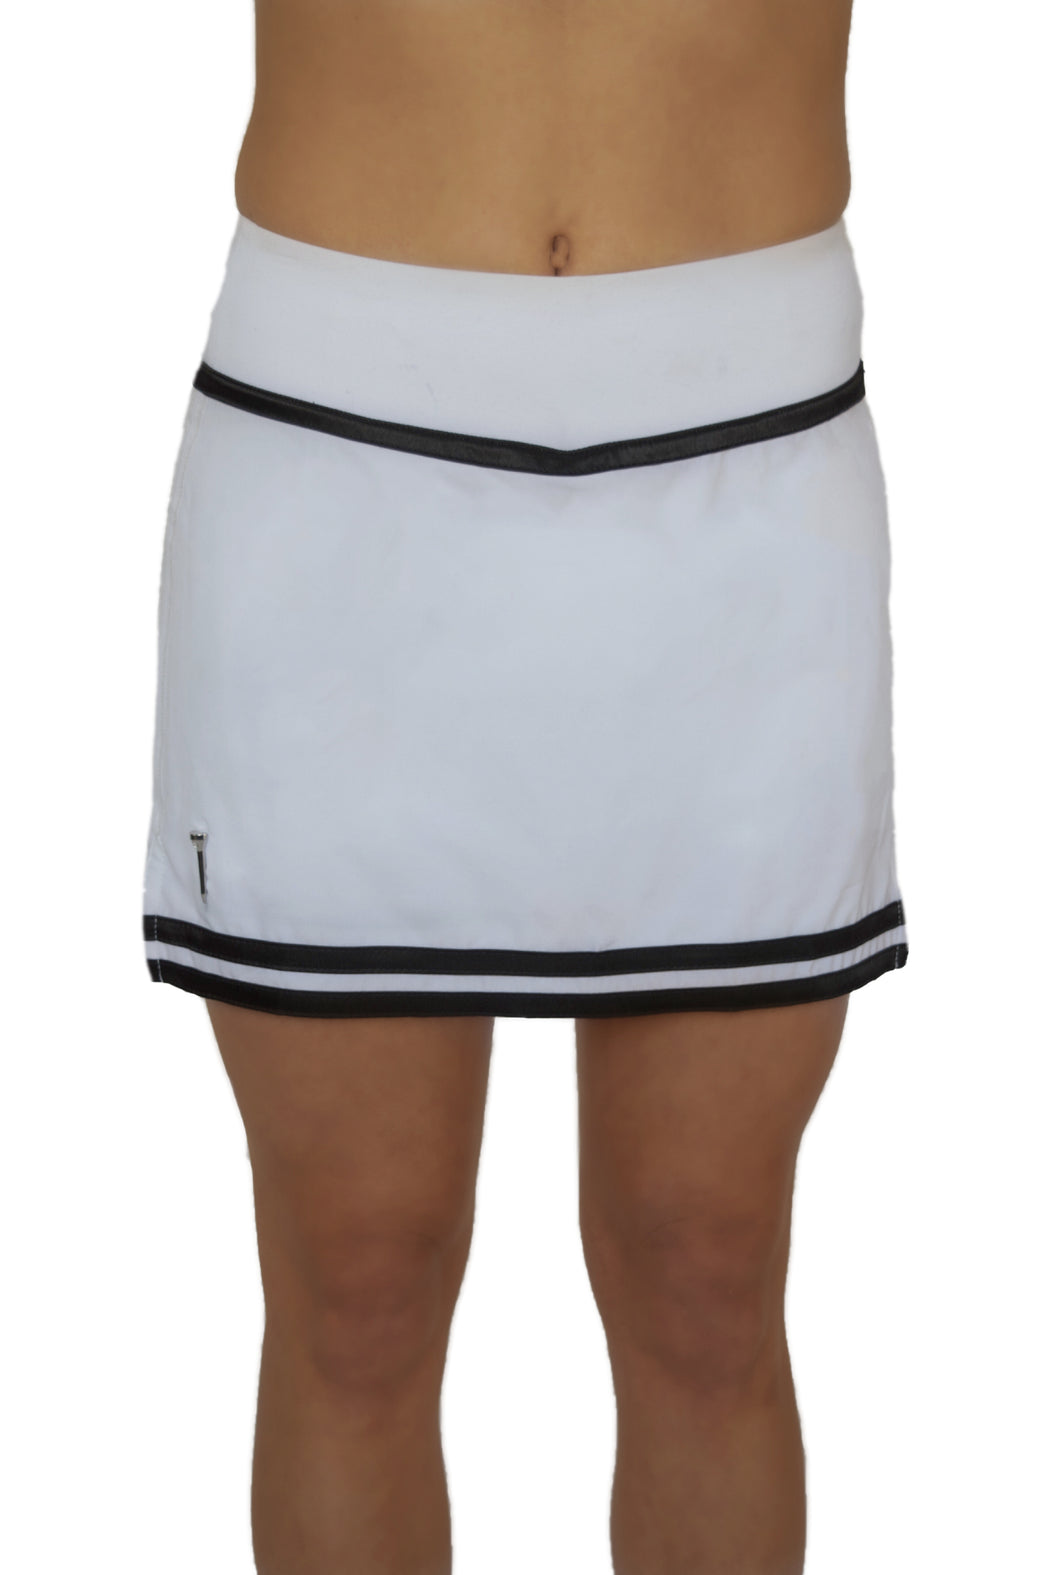 NEW! Striped Hem Golf Skirt - White with Black Stripes - FlirTee Golf